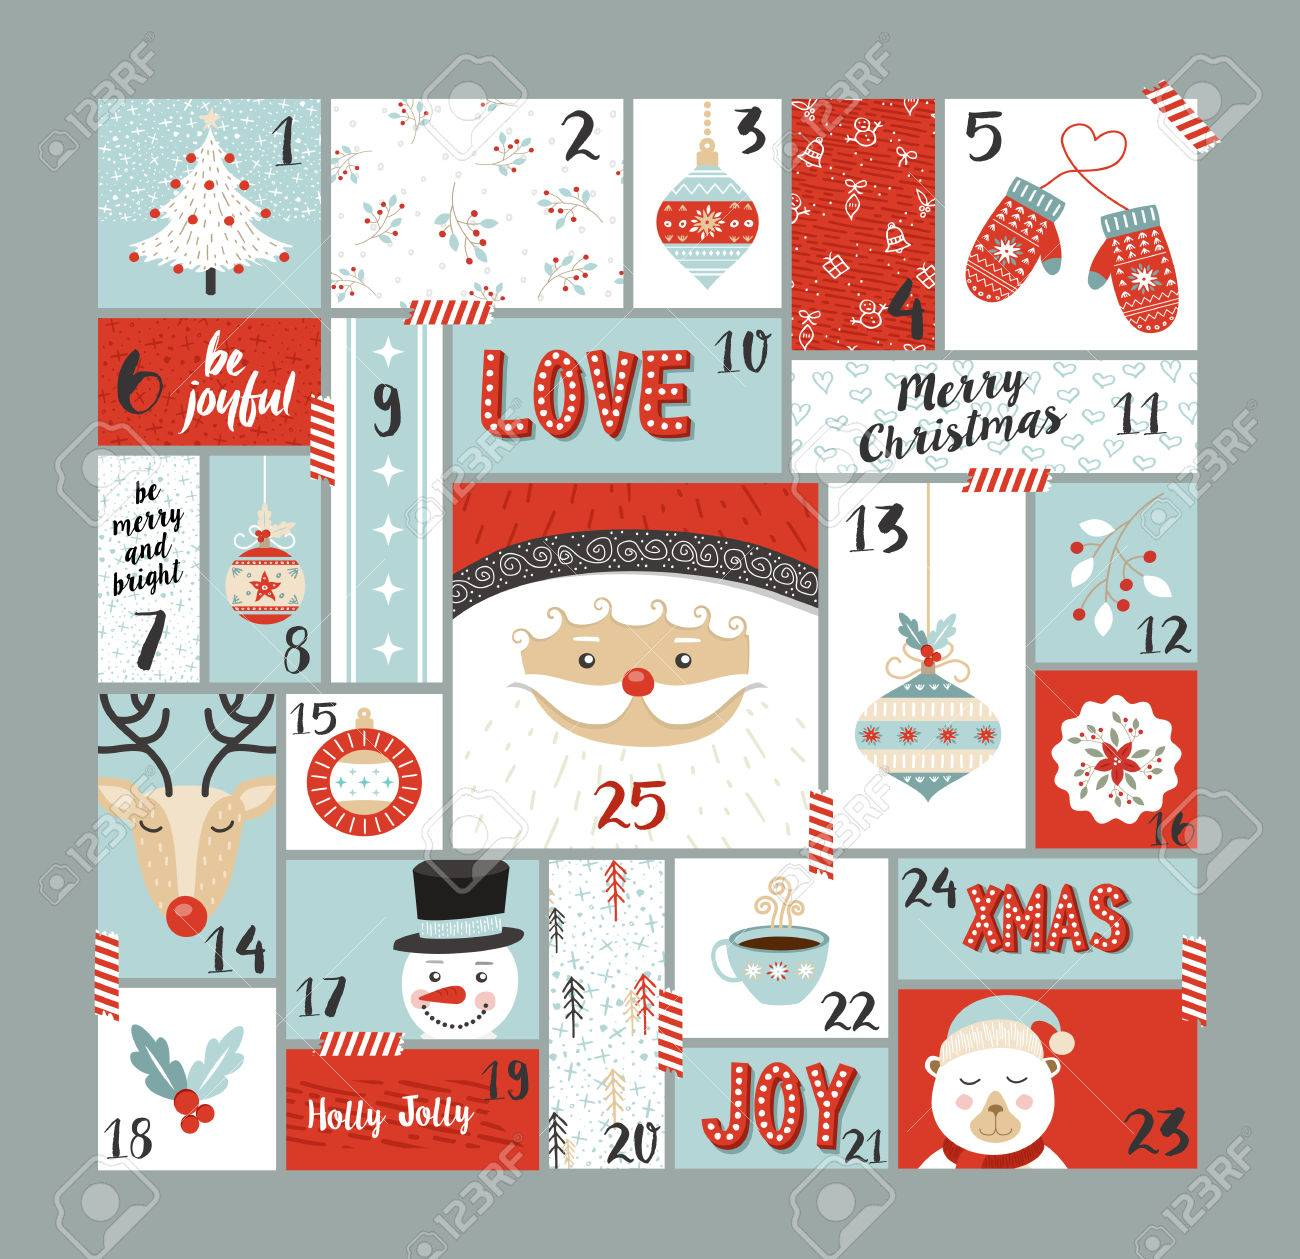 Christmas Countdown Calendar.Christmas Advent Calendar Cute Holiday Decoration Countdown